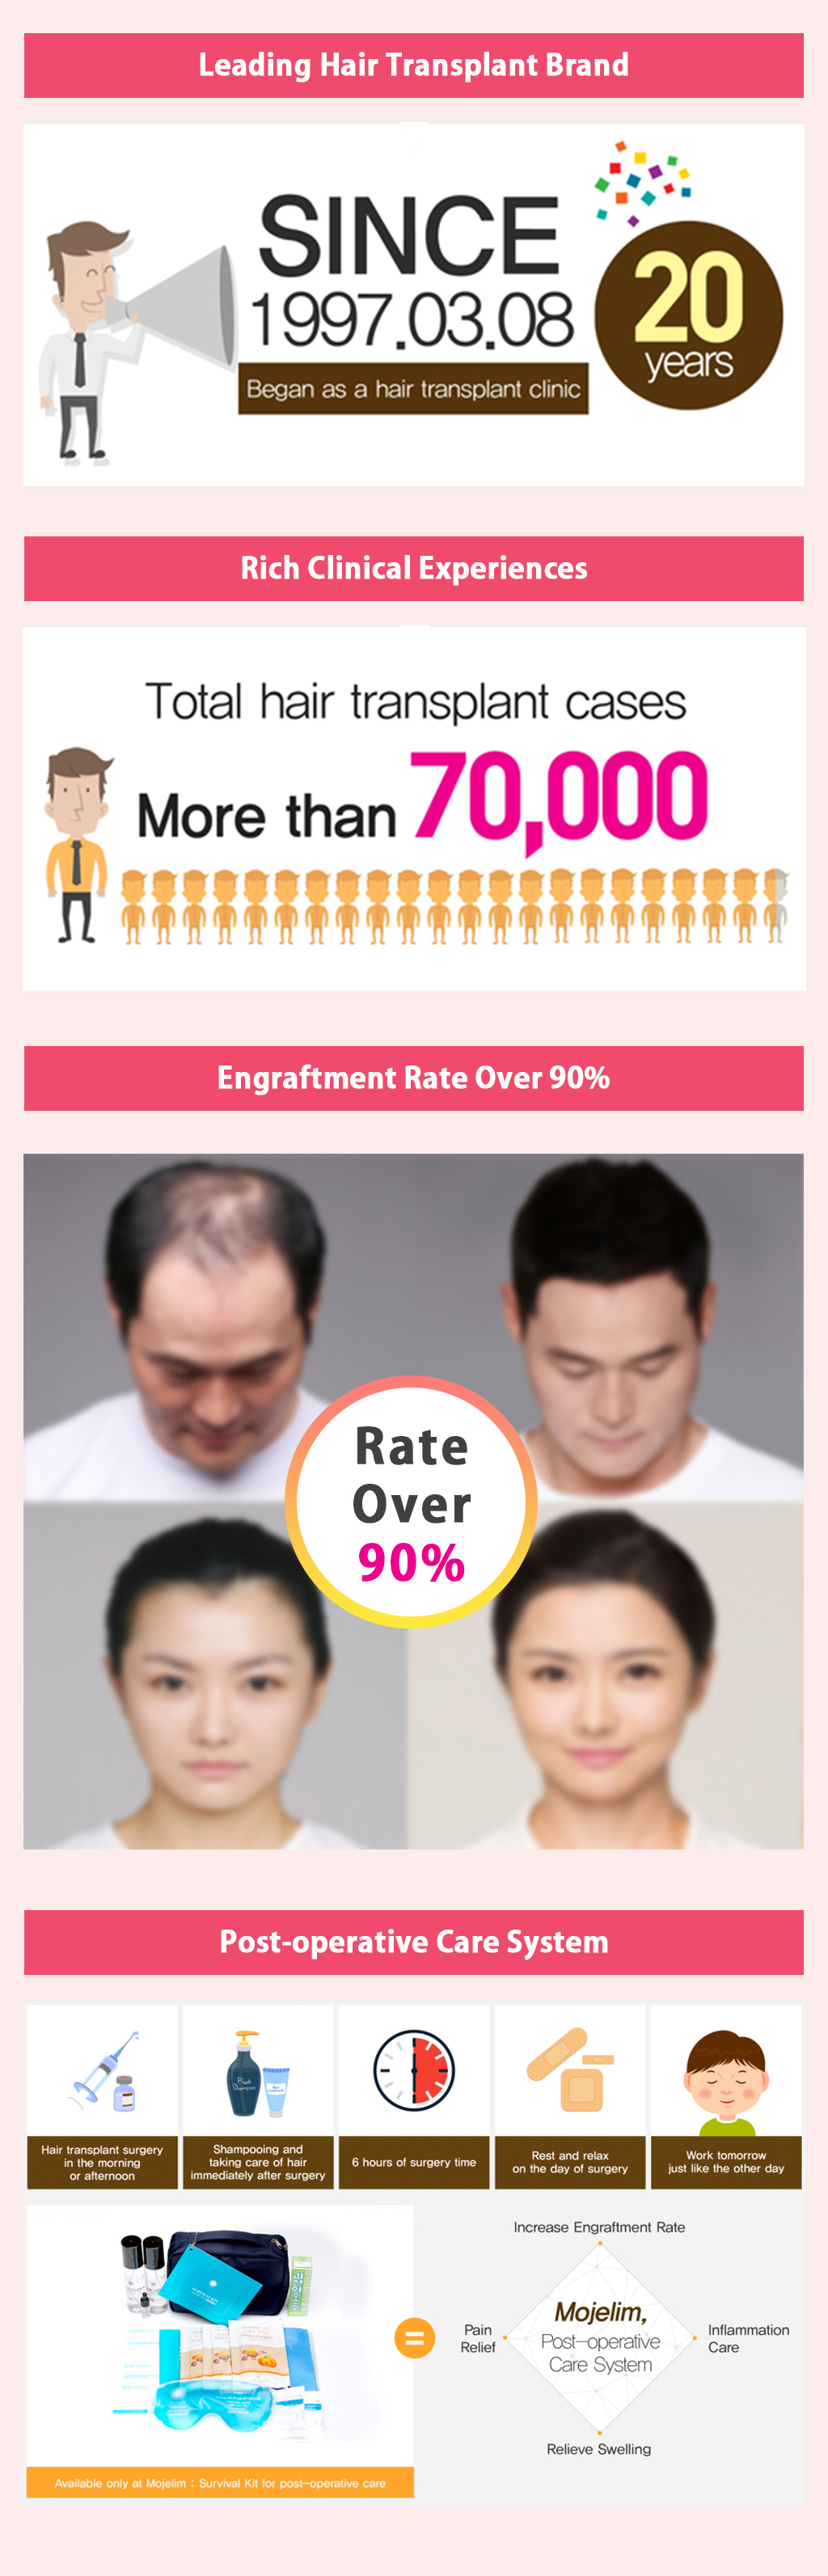 MOJELIM hair surgery x all about mei special offer / why MOJELIM is good / the lowest price in all about mei